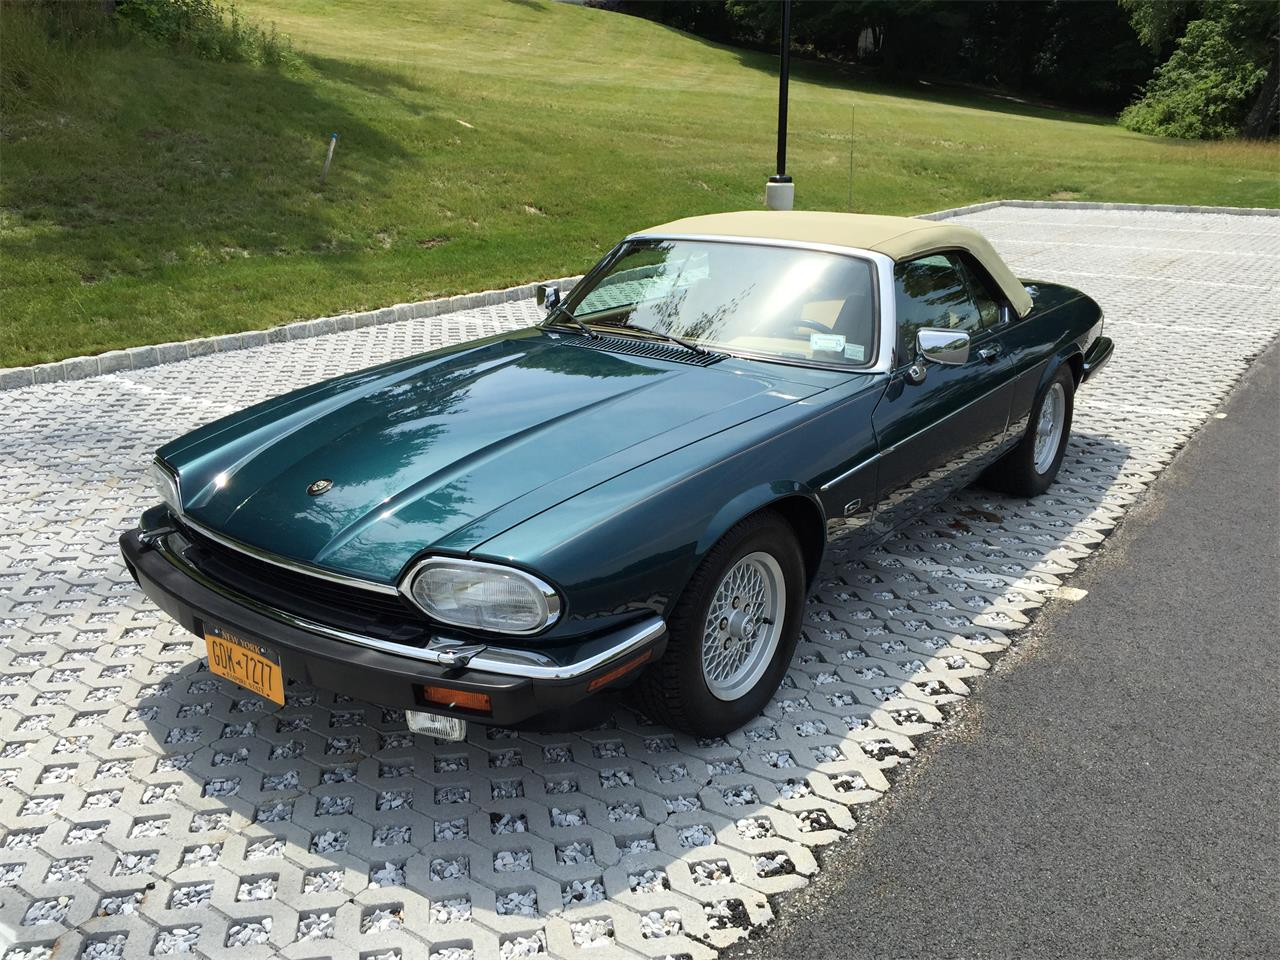 Large Picture of 1992 XJS located in Carmel New York - $12,000.00 Offered by a Private Seller - EVKT